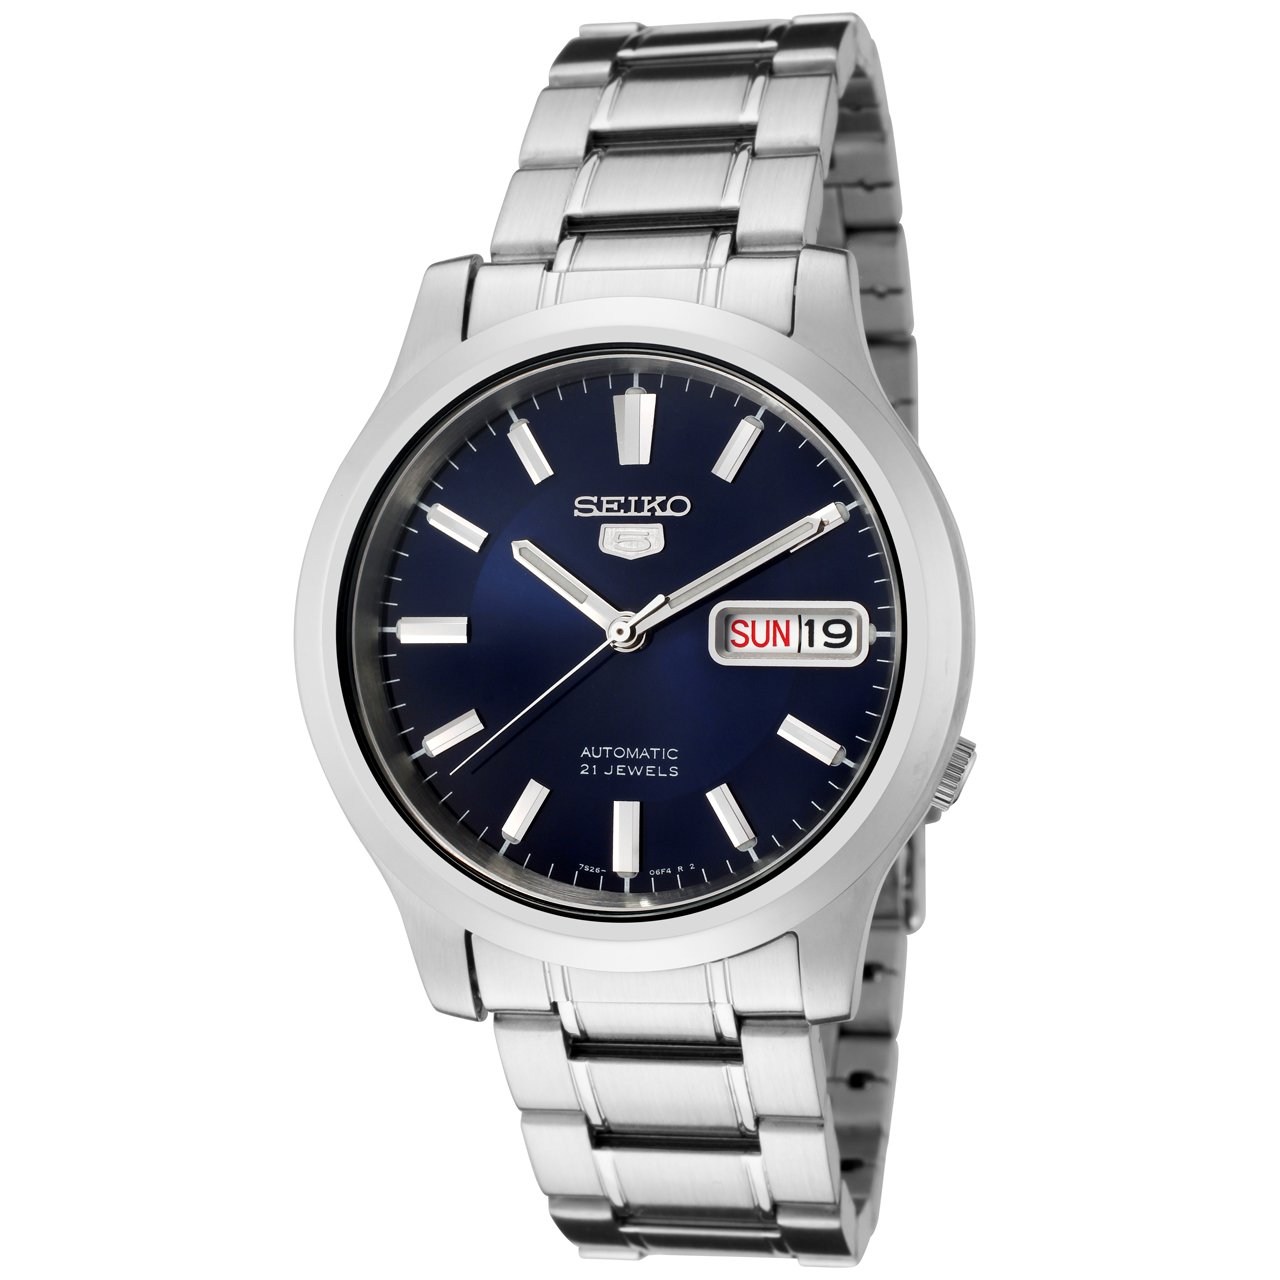 Seiko Men's Snk793 K Automatic Stainless Steel Watch by Seiko